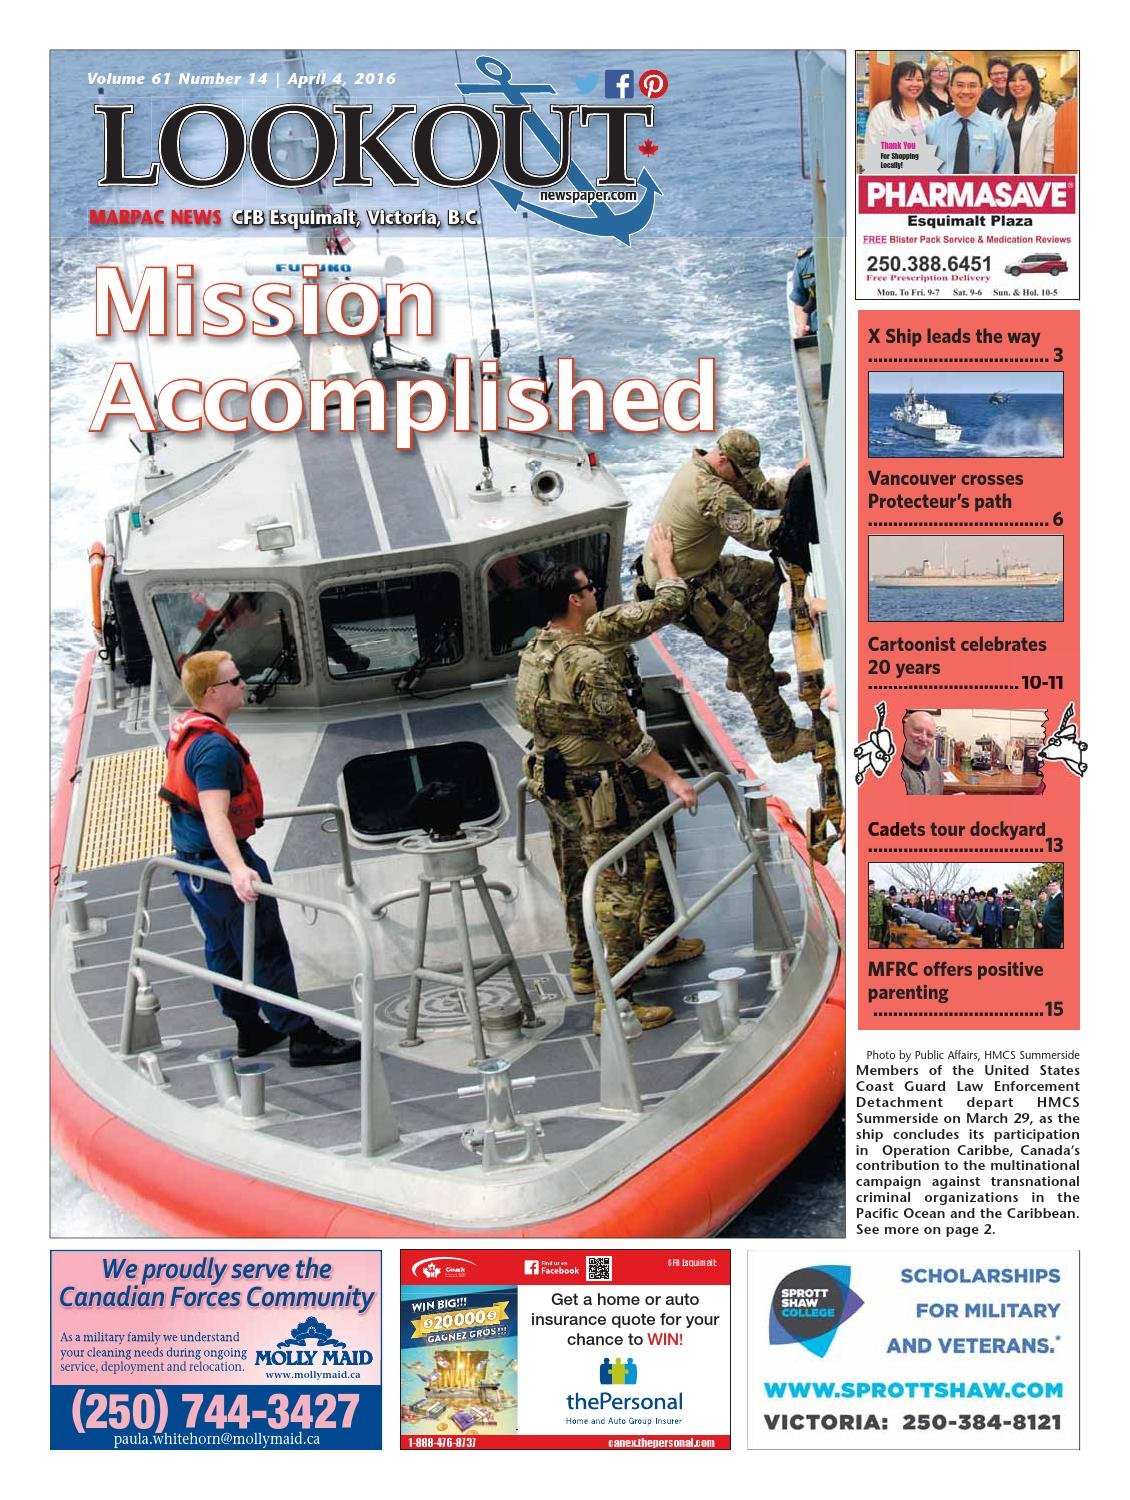 Issue 14 April 4 2016 By Lookout Newspaper Issuu Game Ps4 The Crew Requires Internet Reg 1